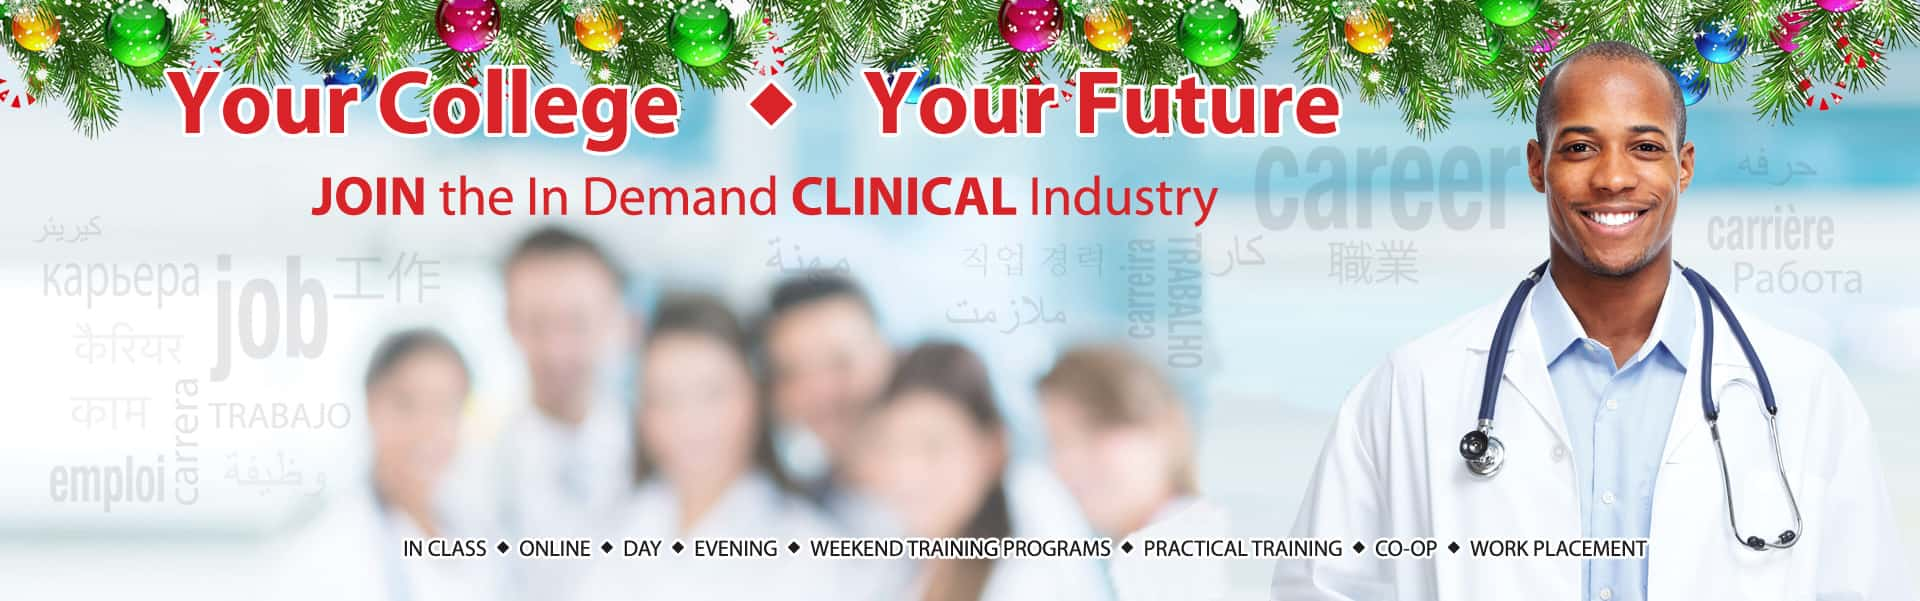 Your-college-clinical-main-christmas 2